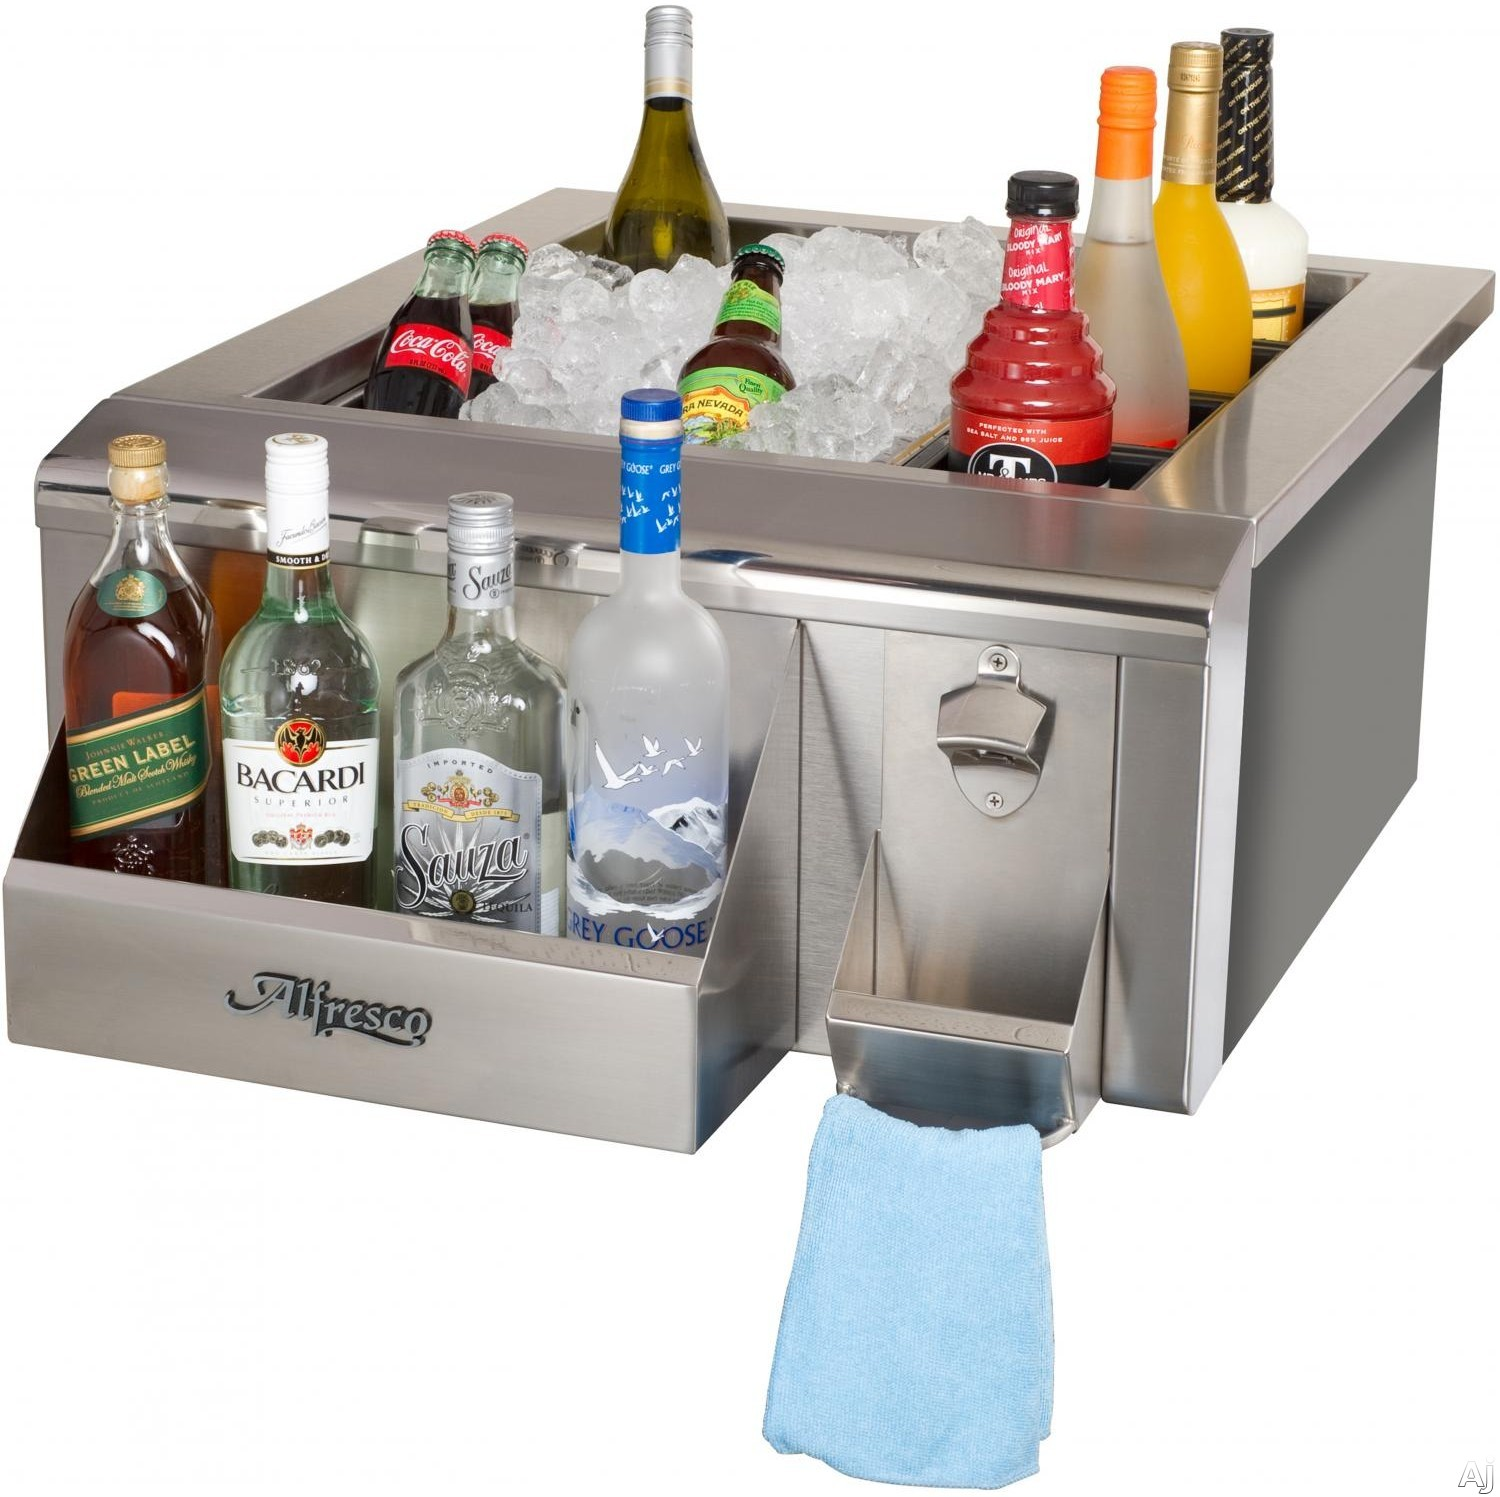 Alfresco AGBC24 24 Inch Built In Bartender and Sink System with 3 Inch Basket Drain and Stopper 1 Inch Thick Foam Insulation 60 Lbs Ice Capacity Sliding Ice Cover Bottle Speed Rail and Bottle Cap Open